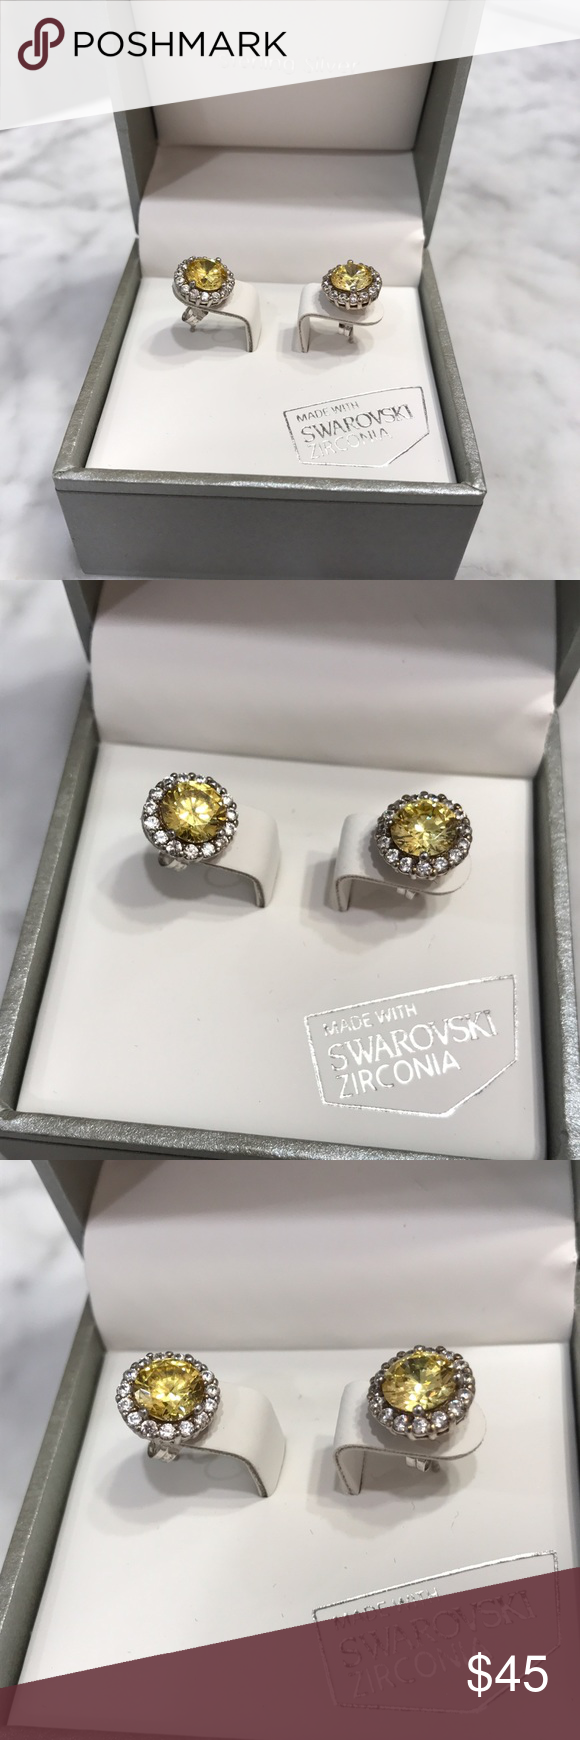 Kiera Couture Sterling Silver Swarovski Earrings Zirconia Stones Settings Canary Diamond Look With Halos Around